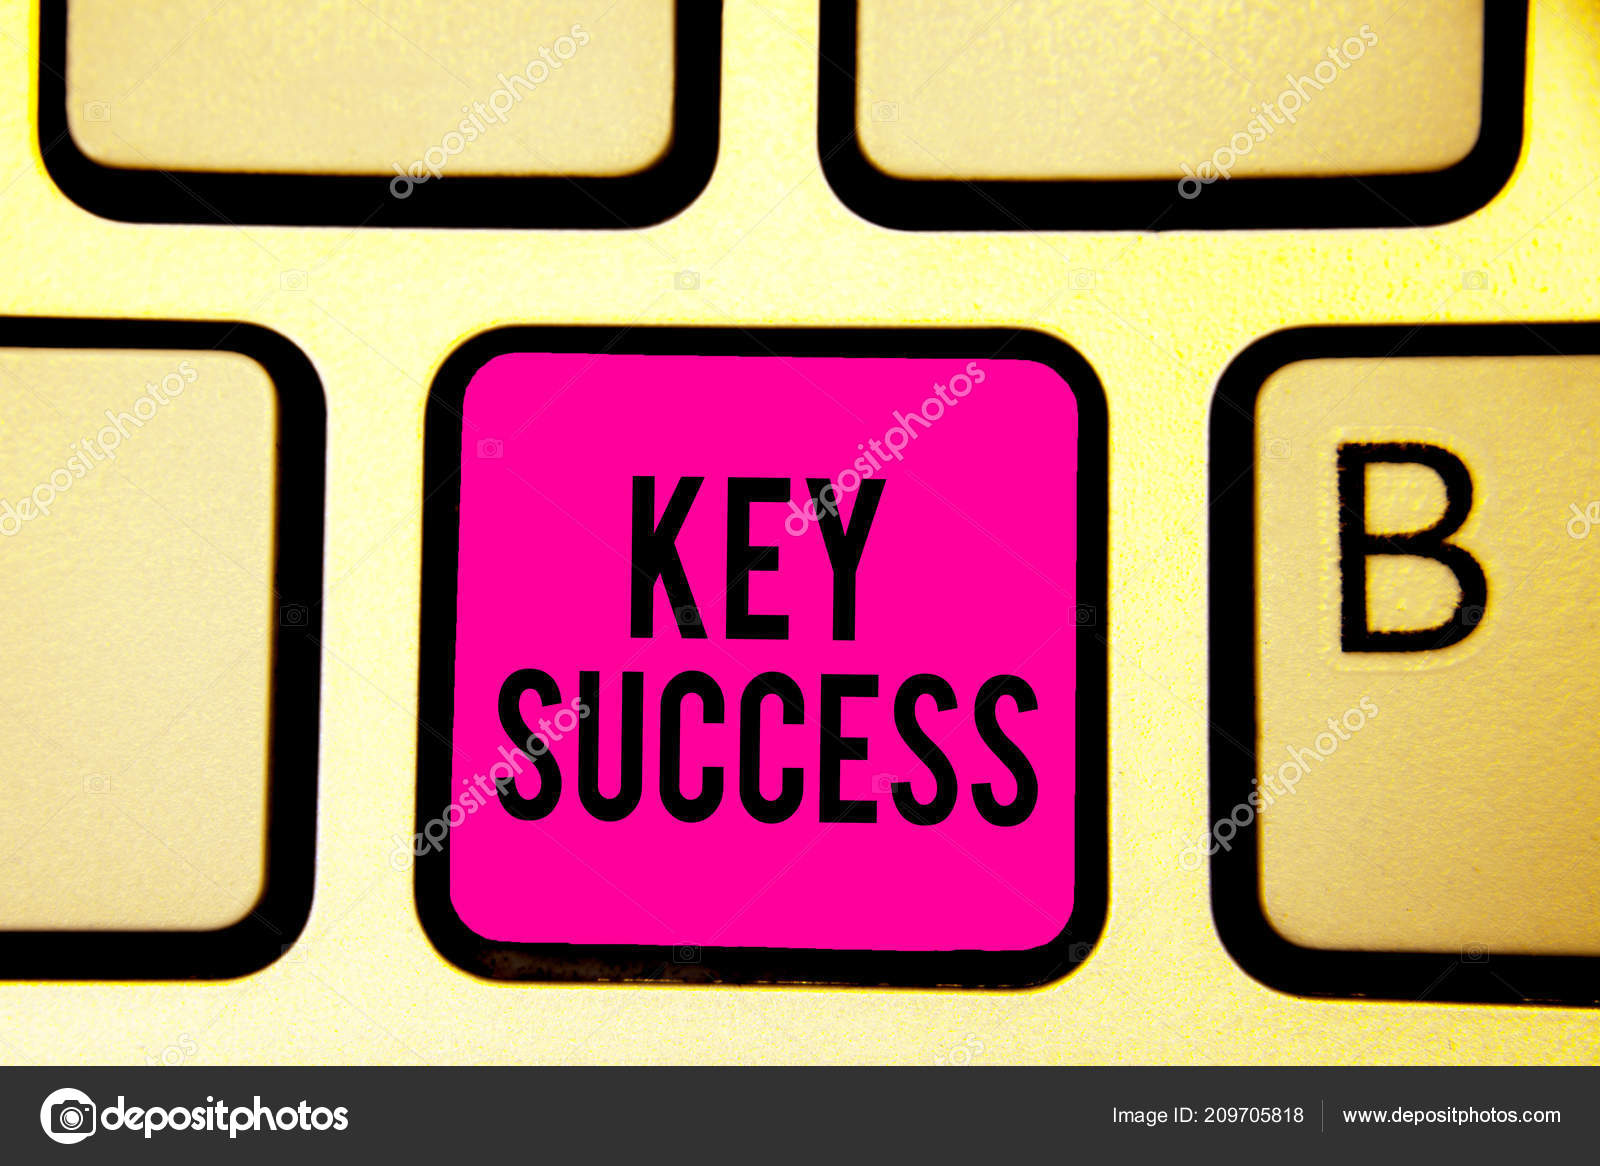 key to success meaning